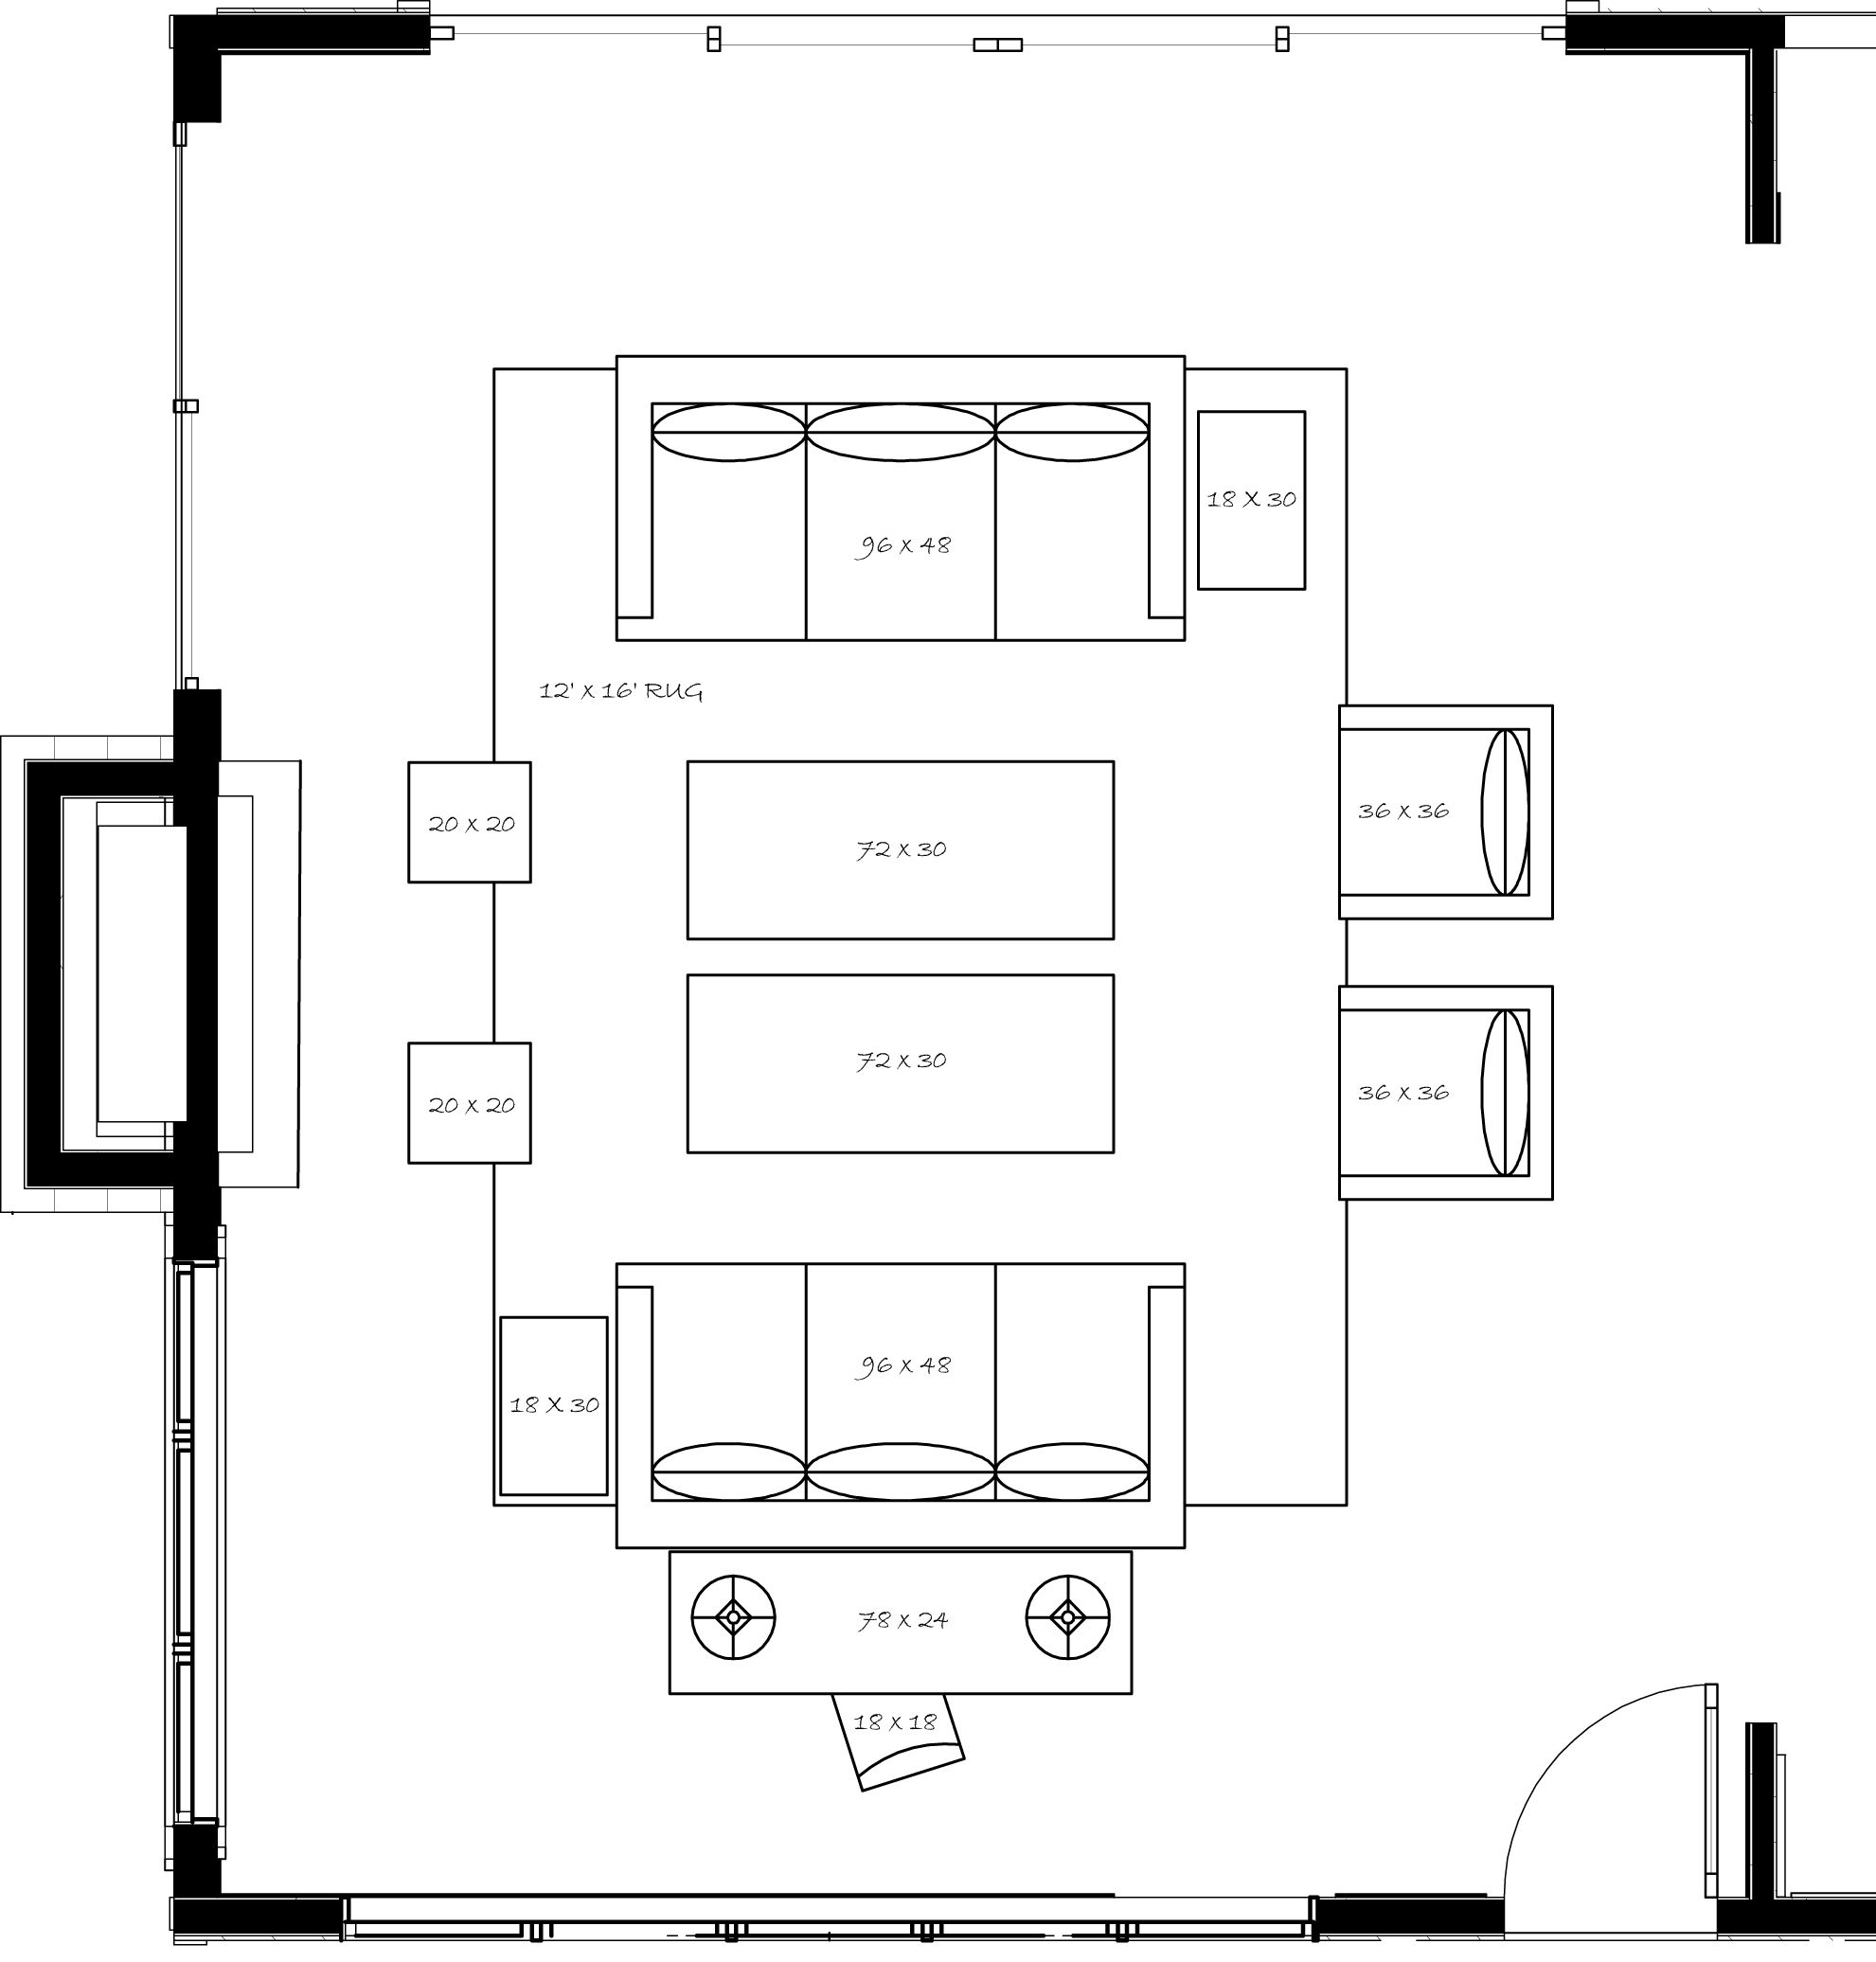 Maxyourspace Livebig  Ideal Floor Plan For Large Rooms  Sofas